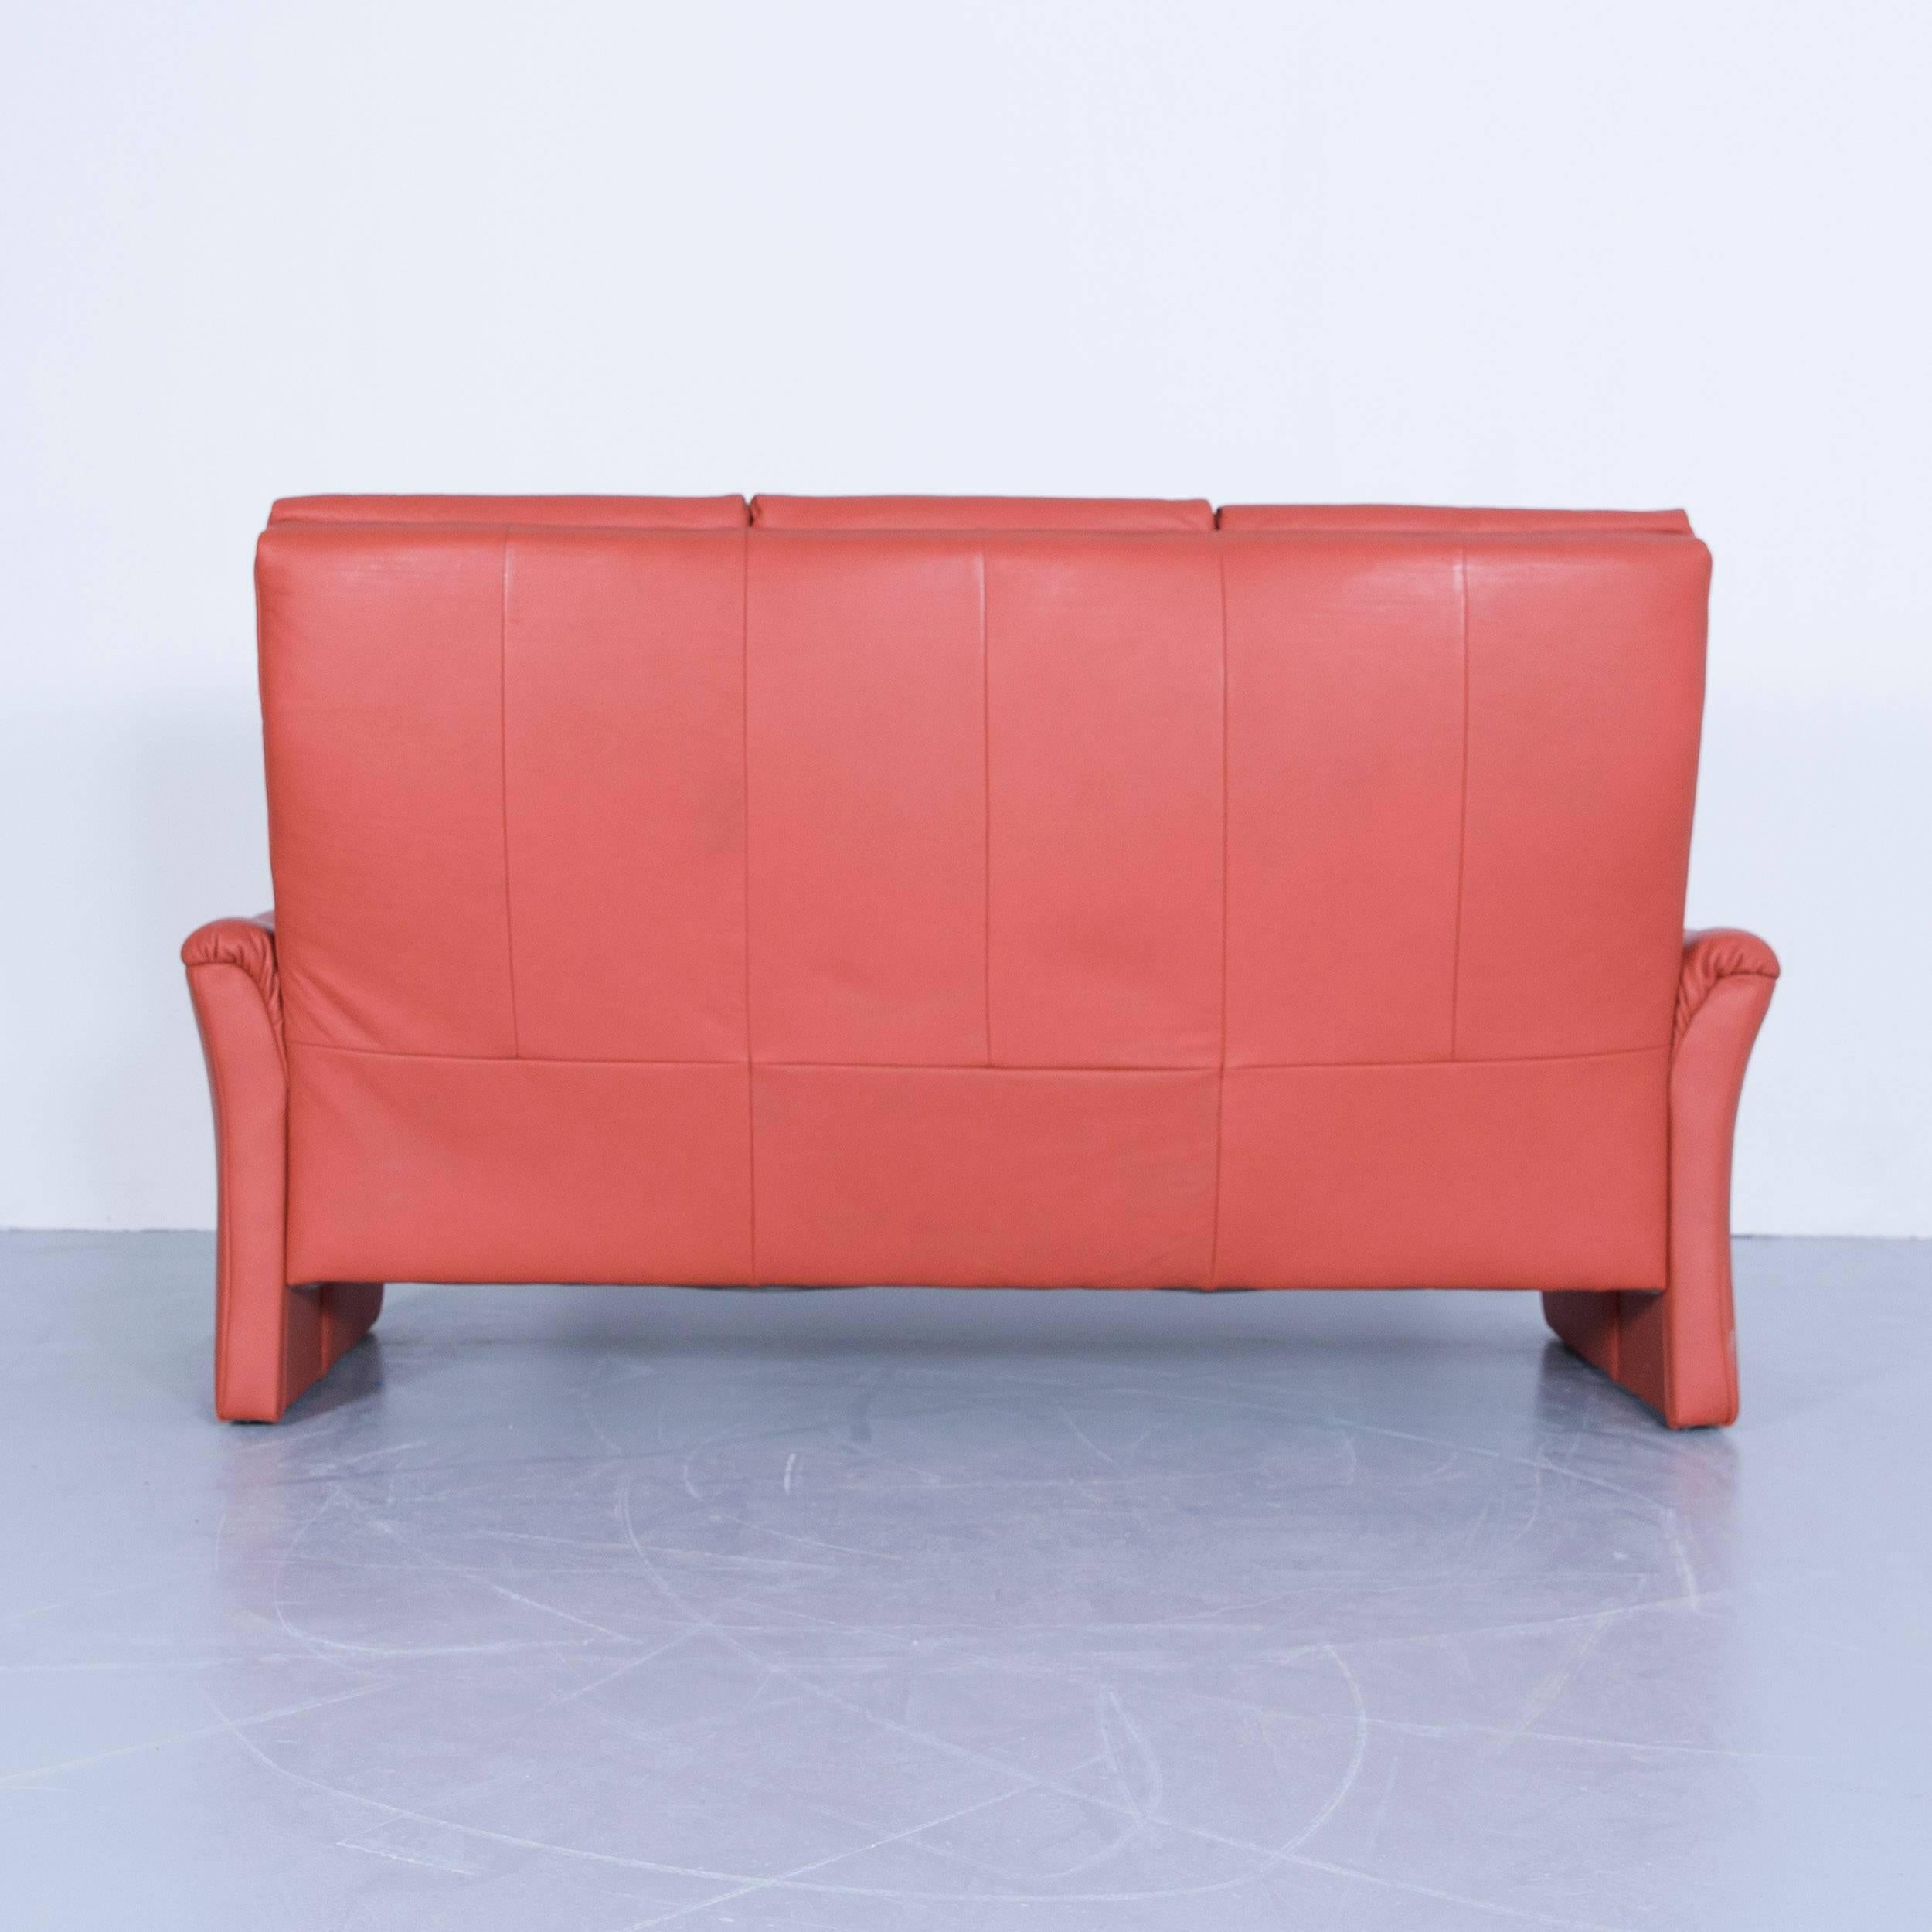 Marvelous One Seat Sofa #8 - Himolla Zerostress Three-Seat Sofa Leather Orange Relax One Seat Couch For  Sale 5